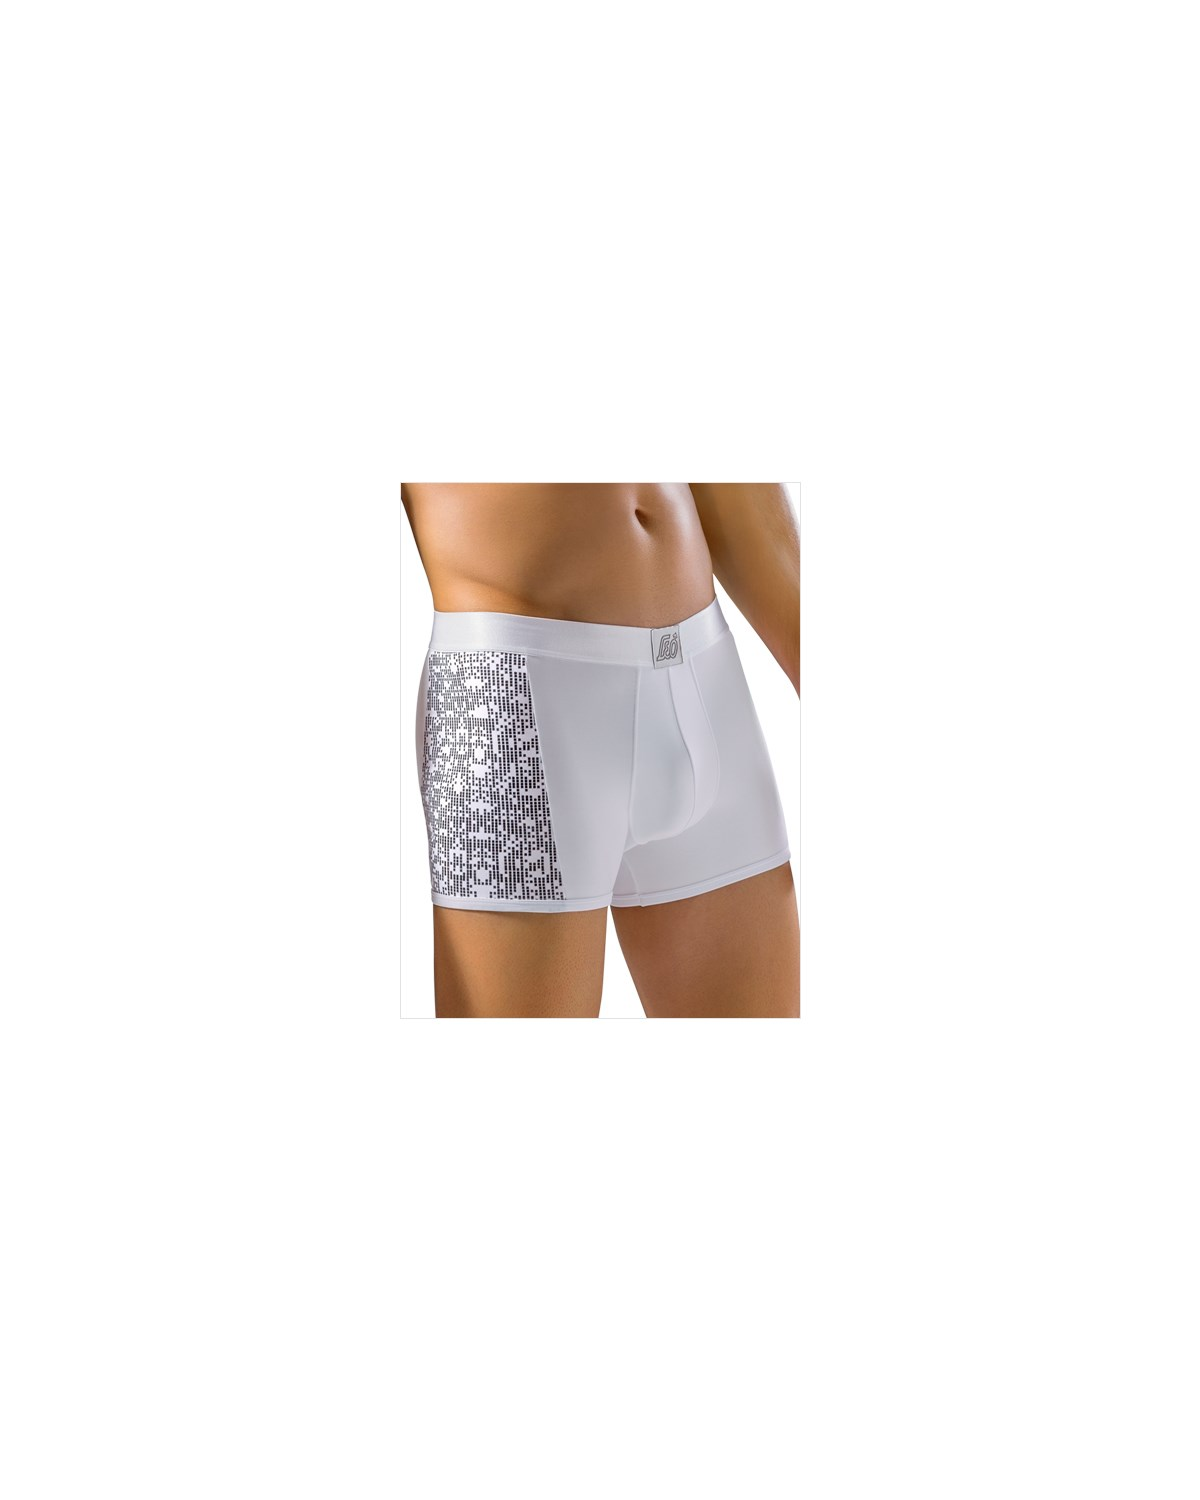 leo boxer brief with advanced stretch fit-000- White-MainImage